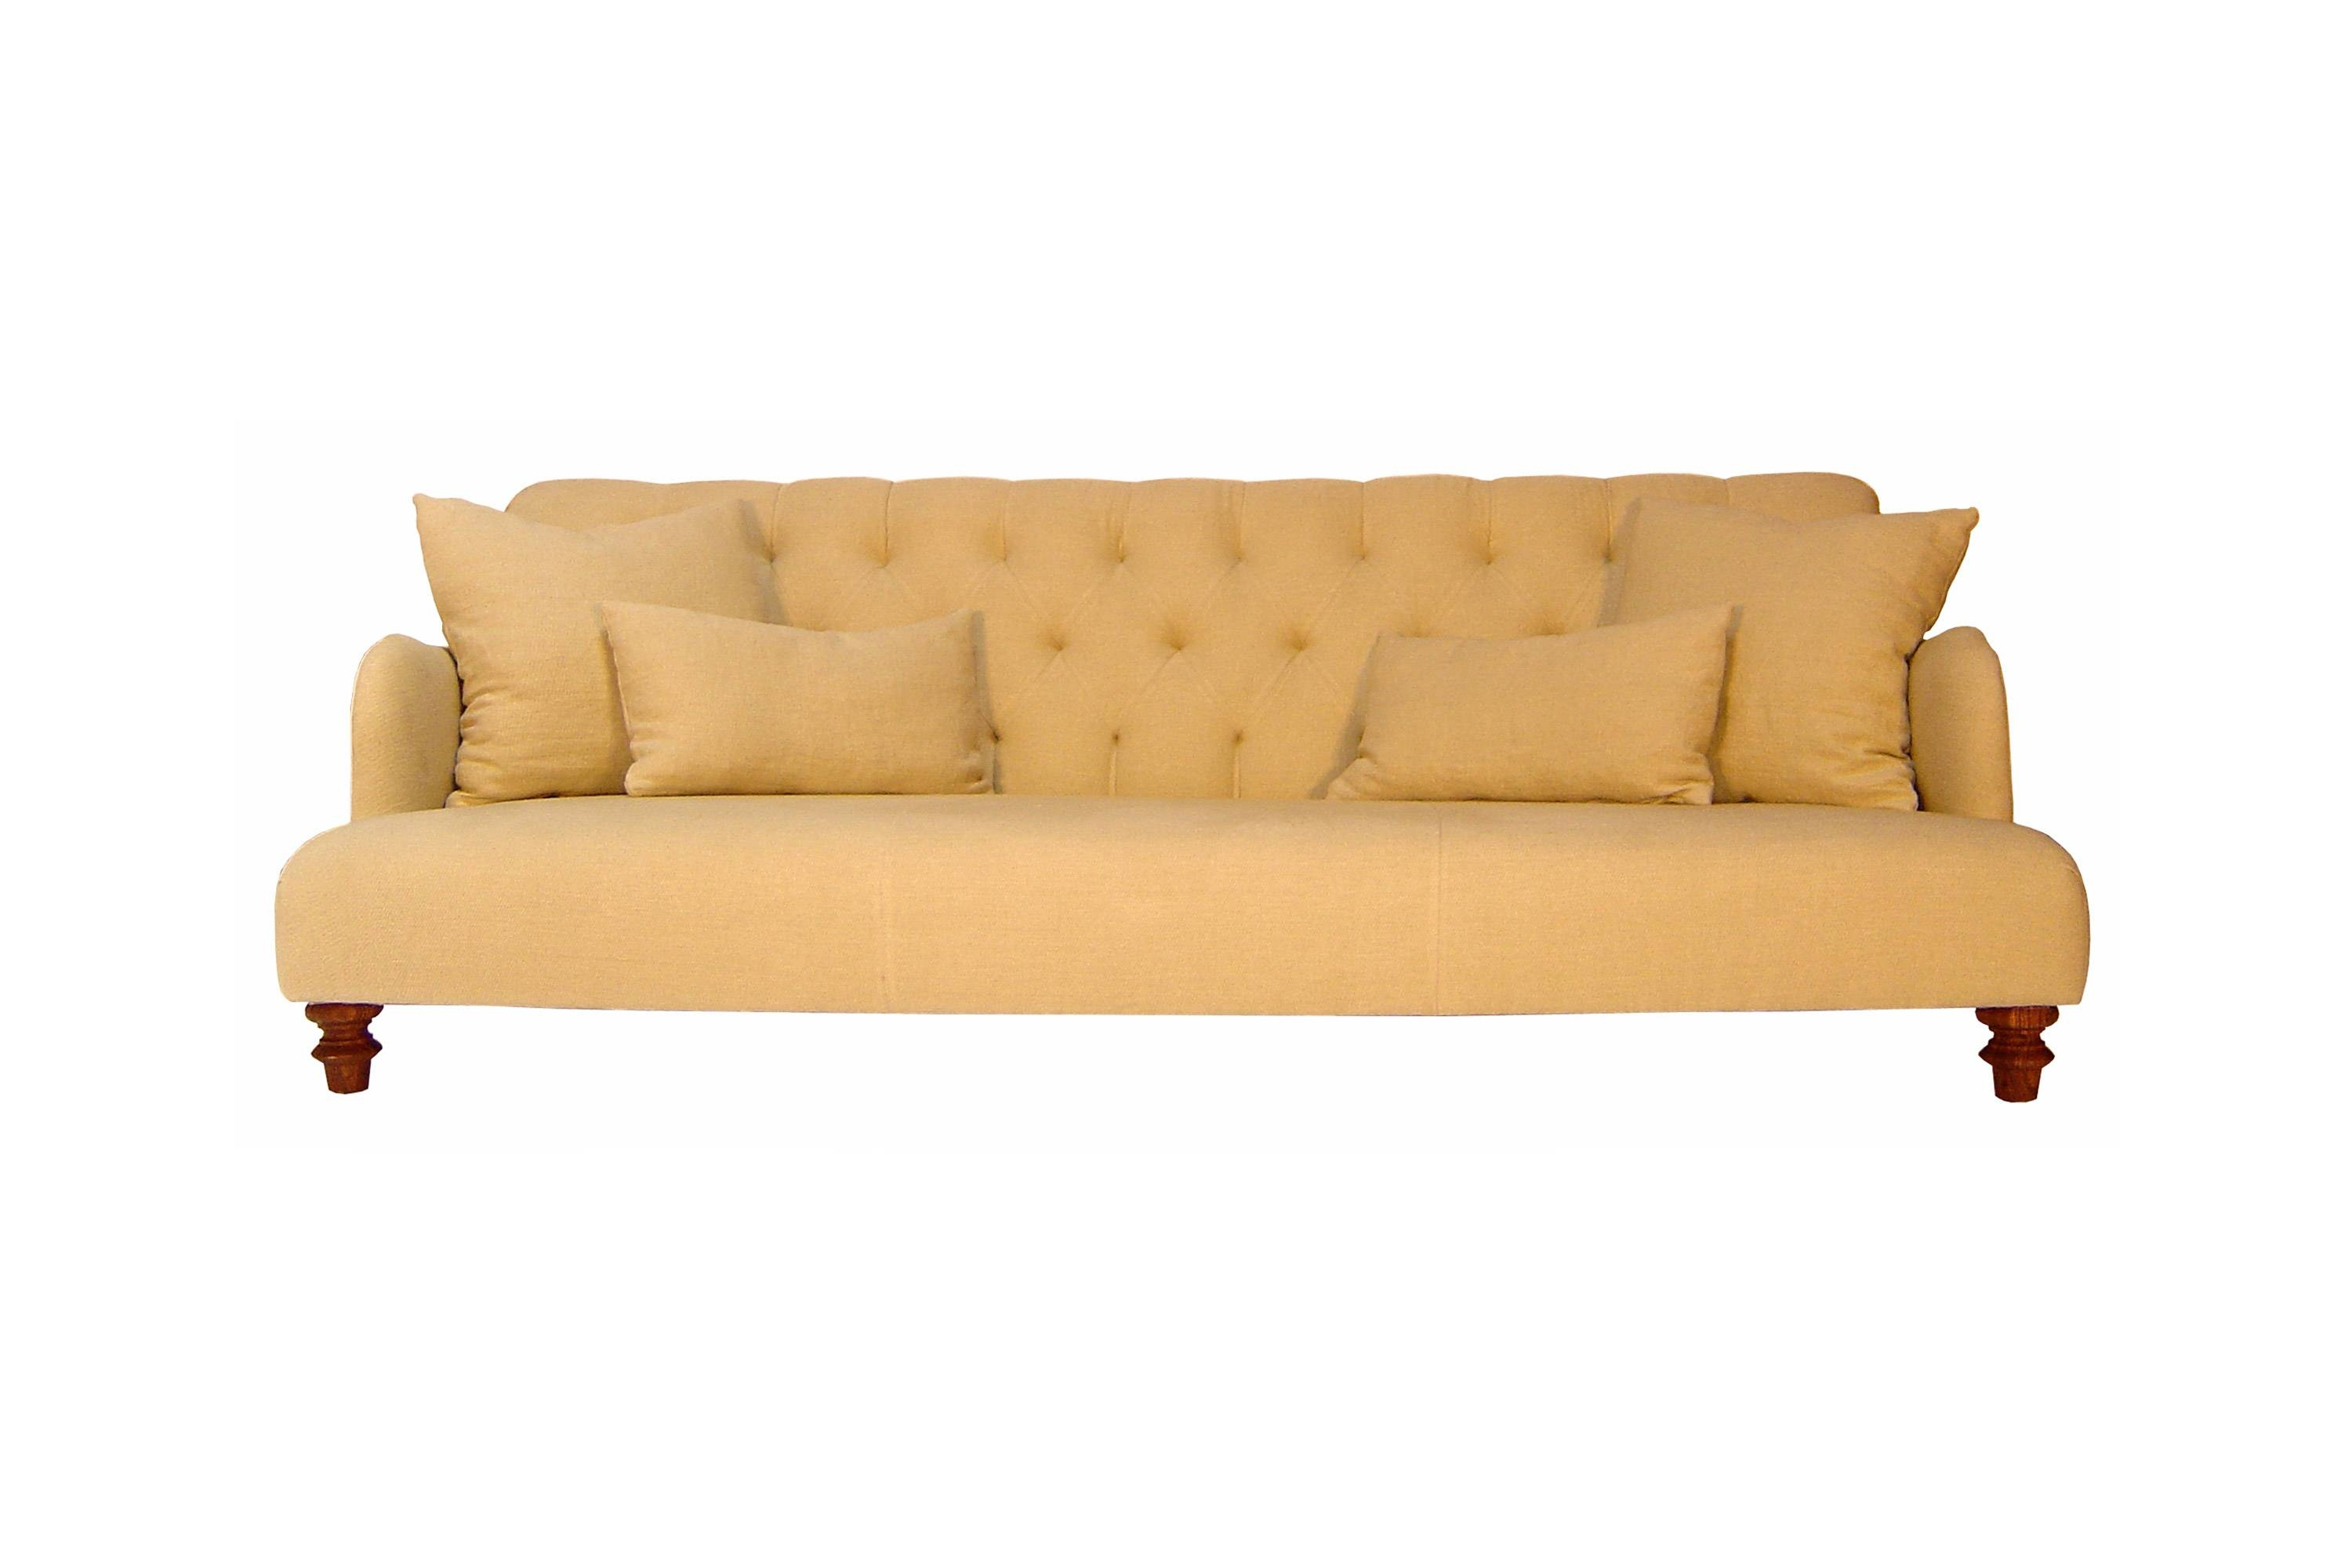 30 inspirations of funky sofas for sale for Sofa for